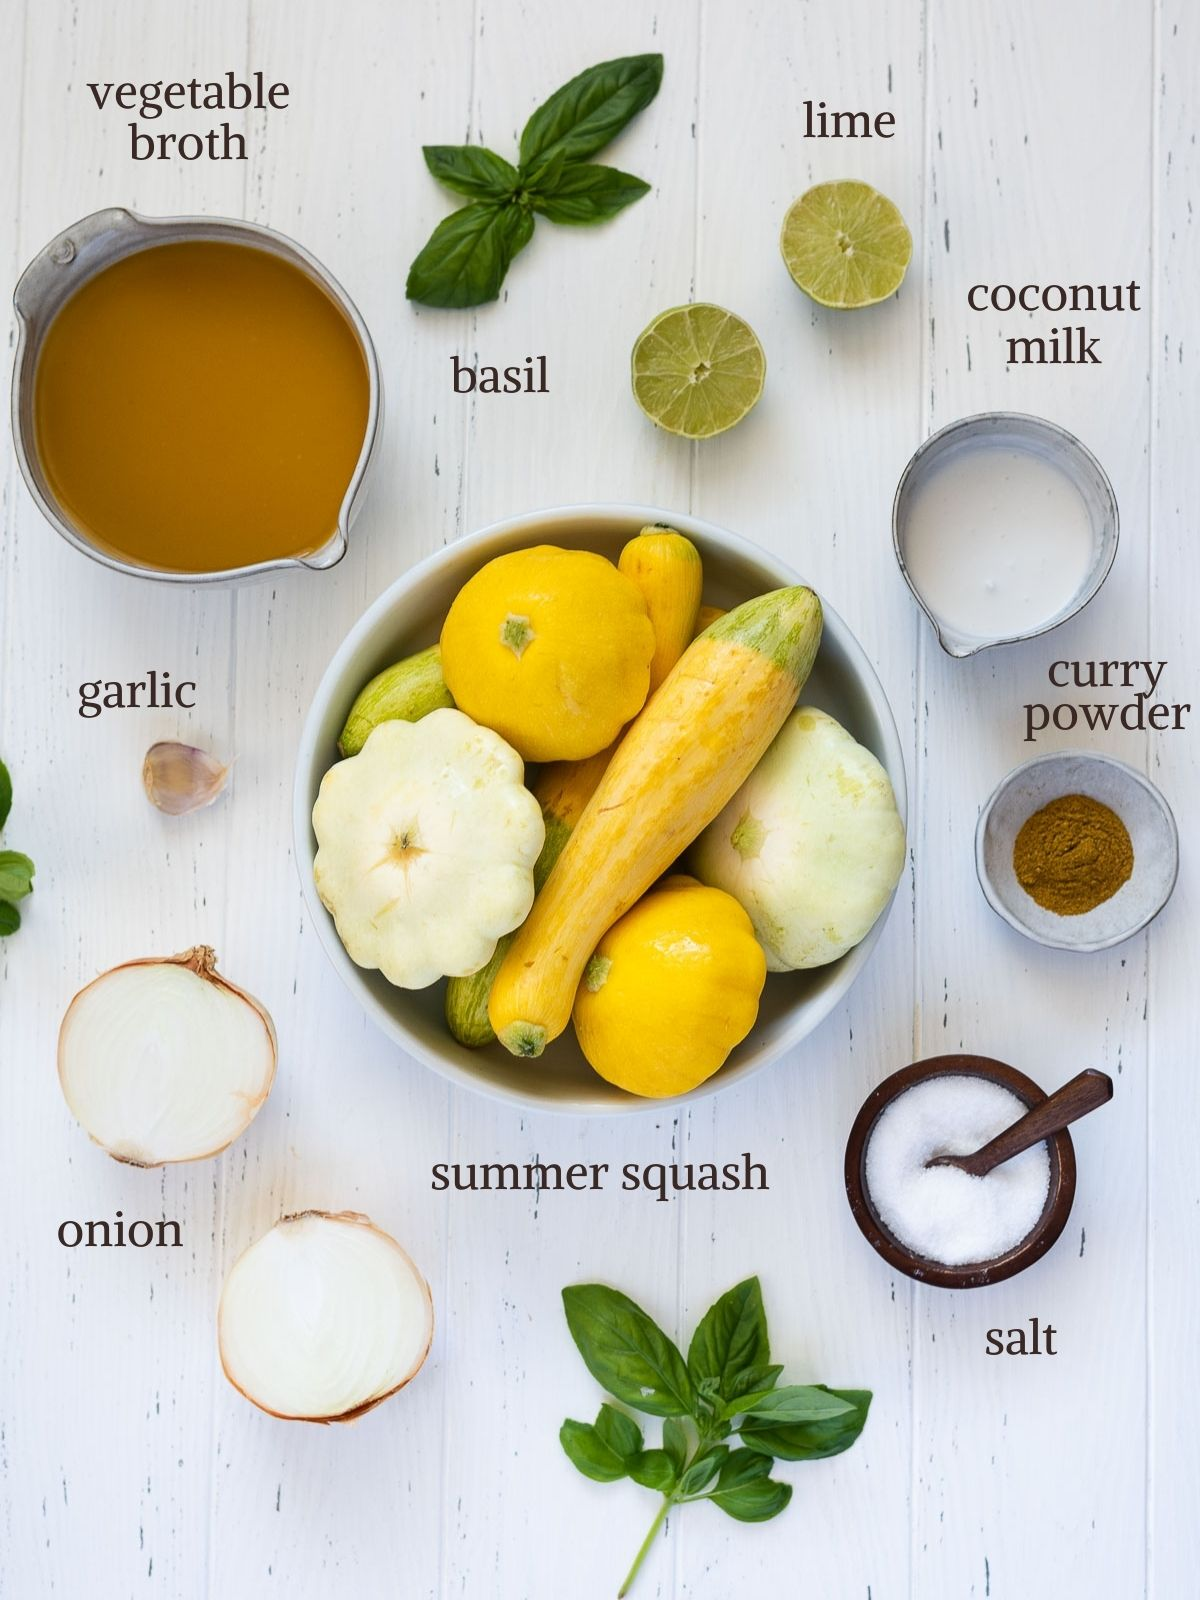 Ingredients for creamy summer squash soup